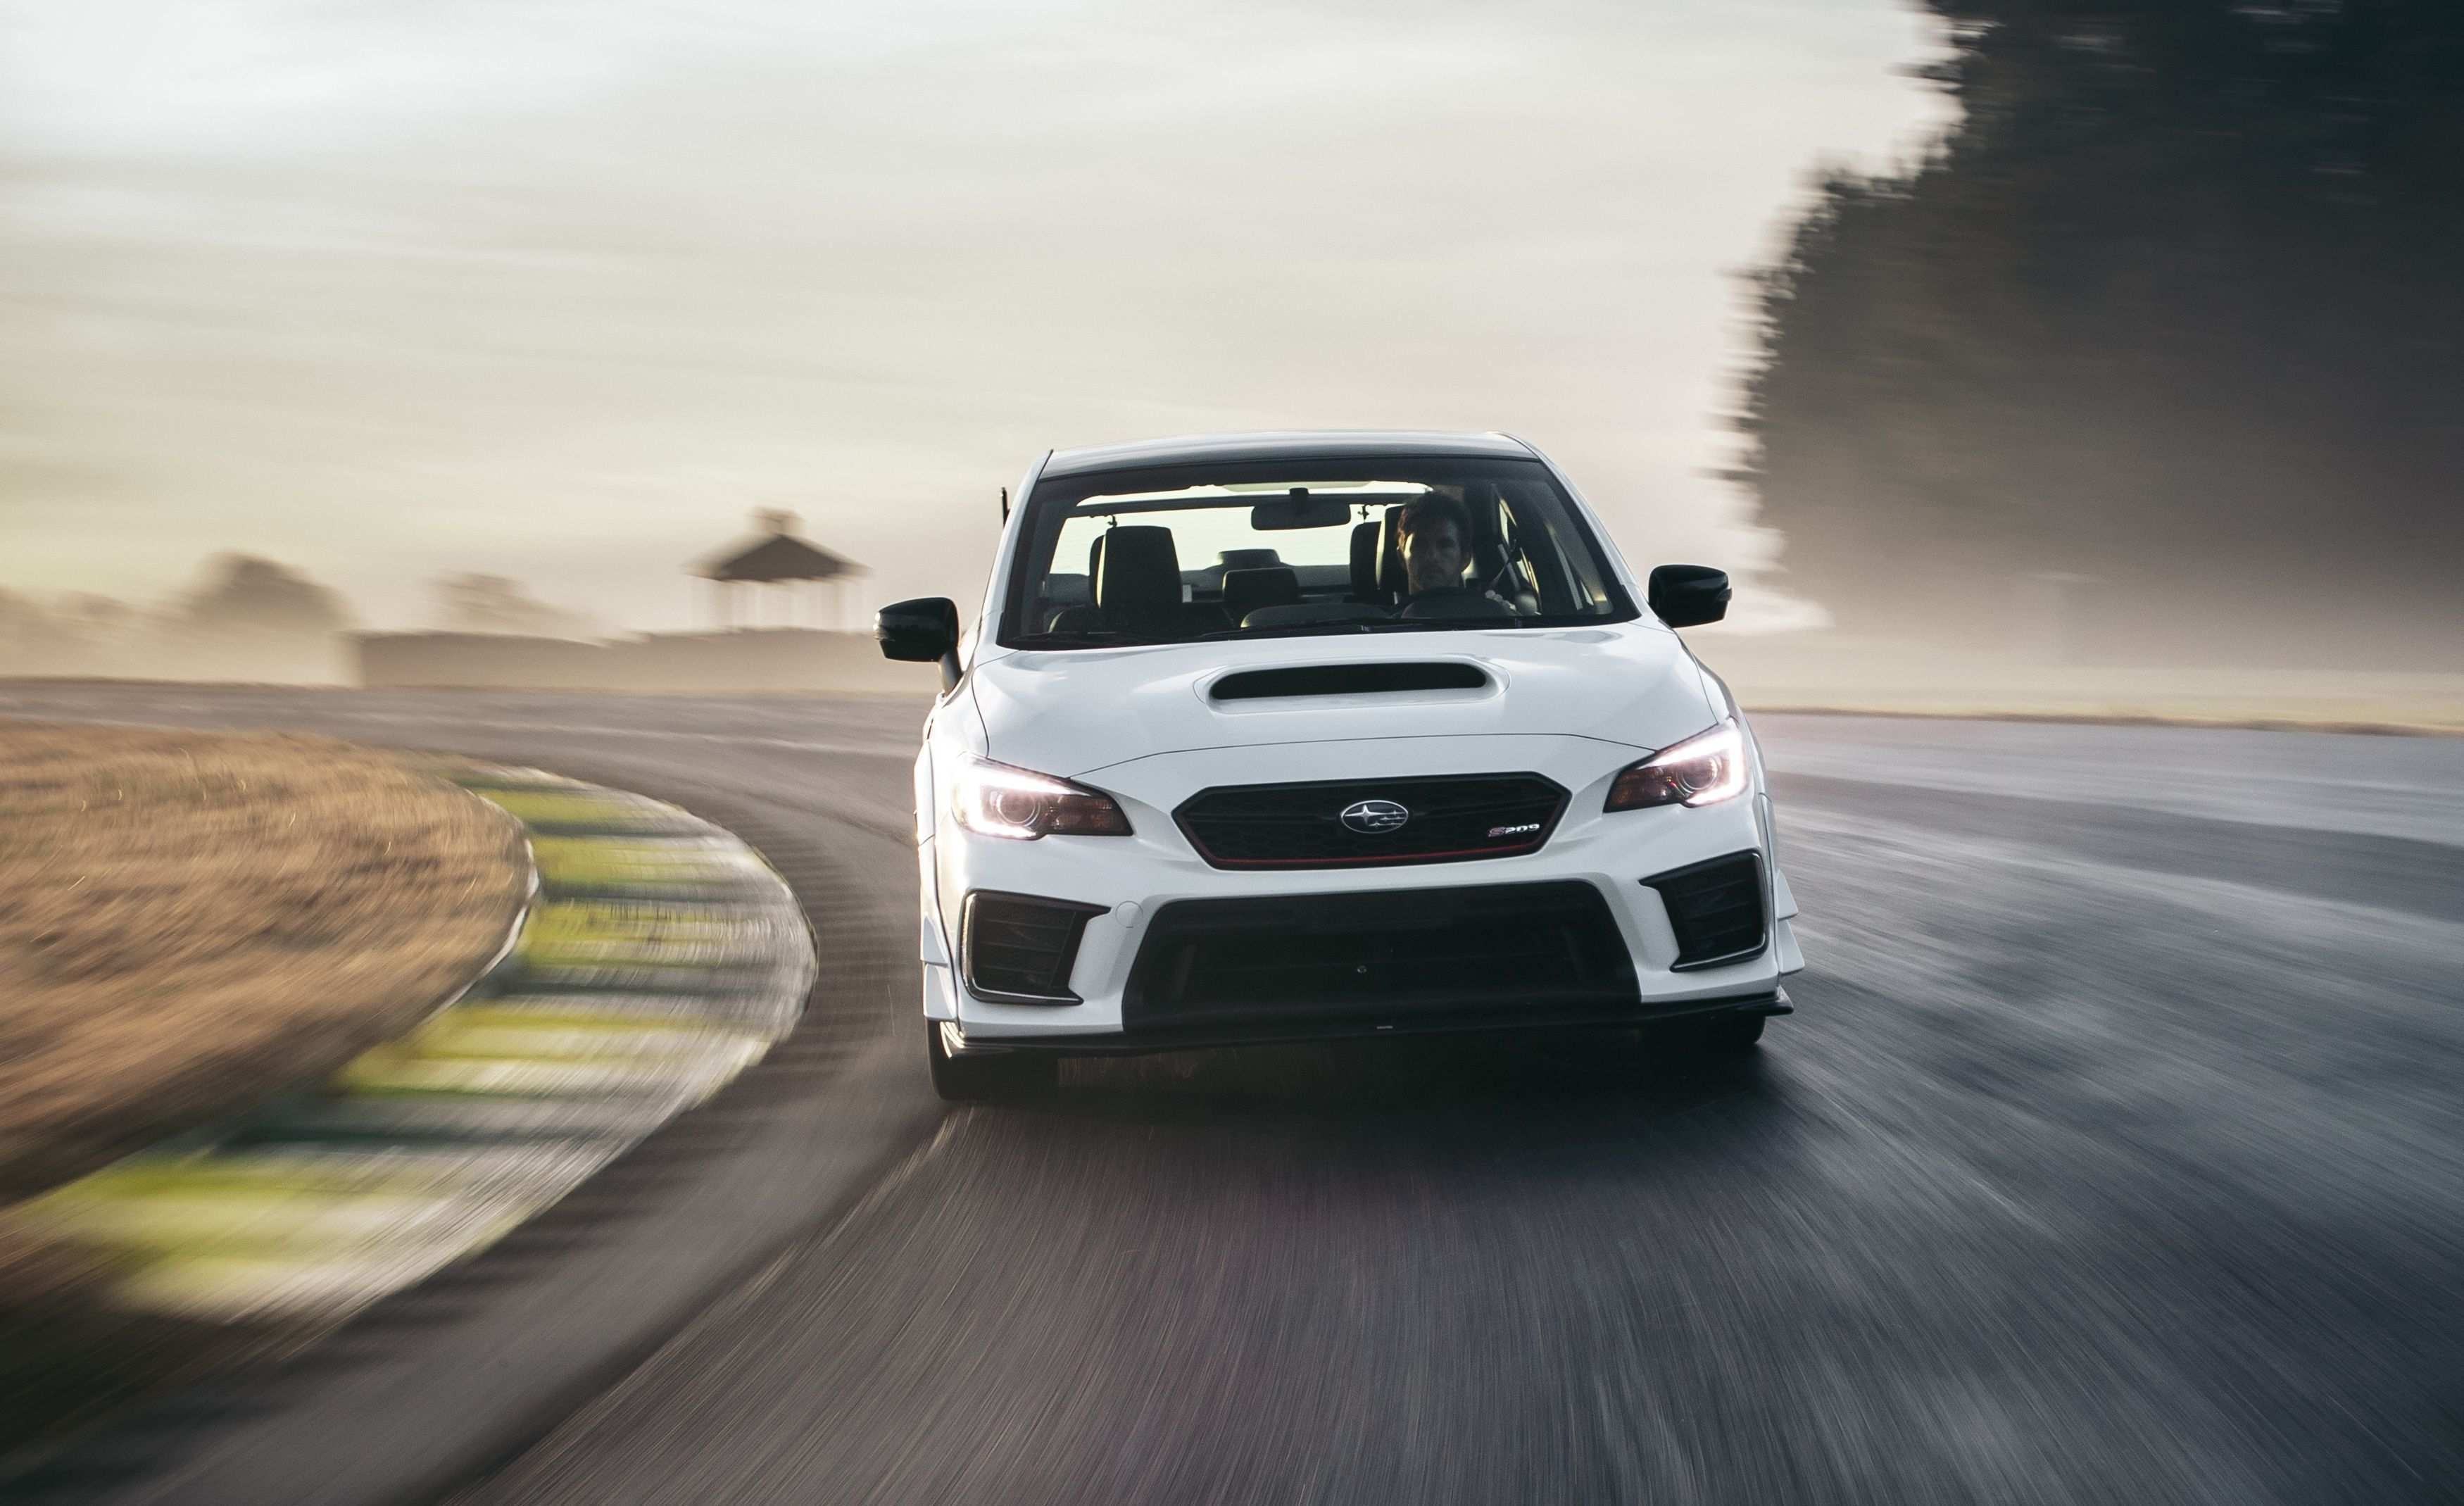 63 Concept of The Subaru Sti Wagon 2019 Specs And Review Research New by The Subaru Sti Wagon 2019 Specs And Review